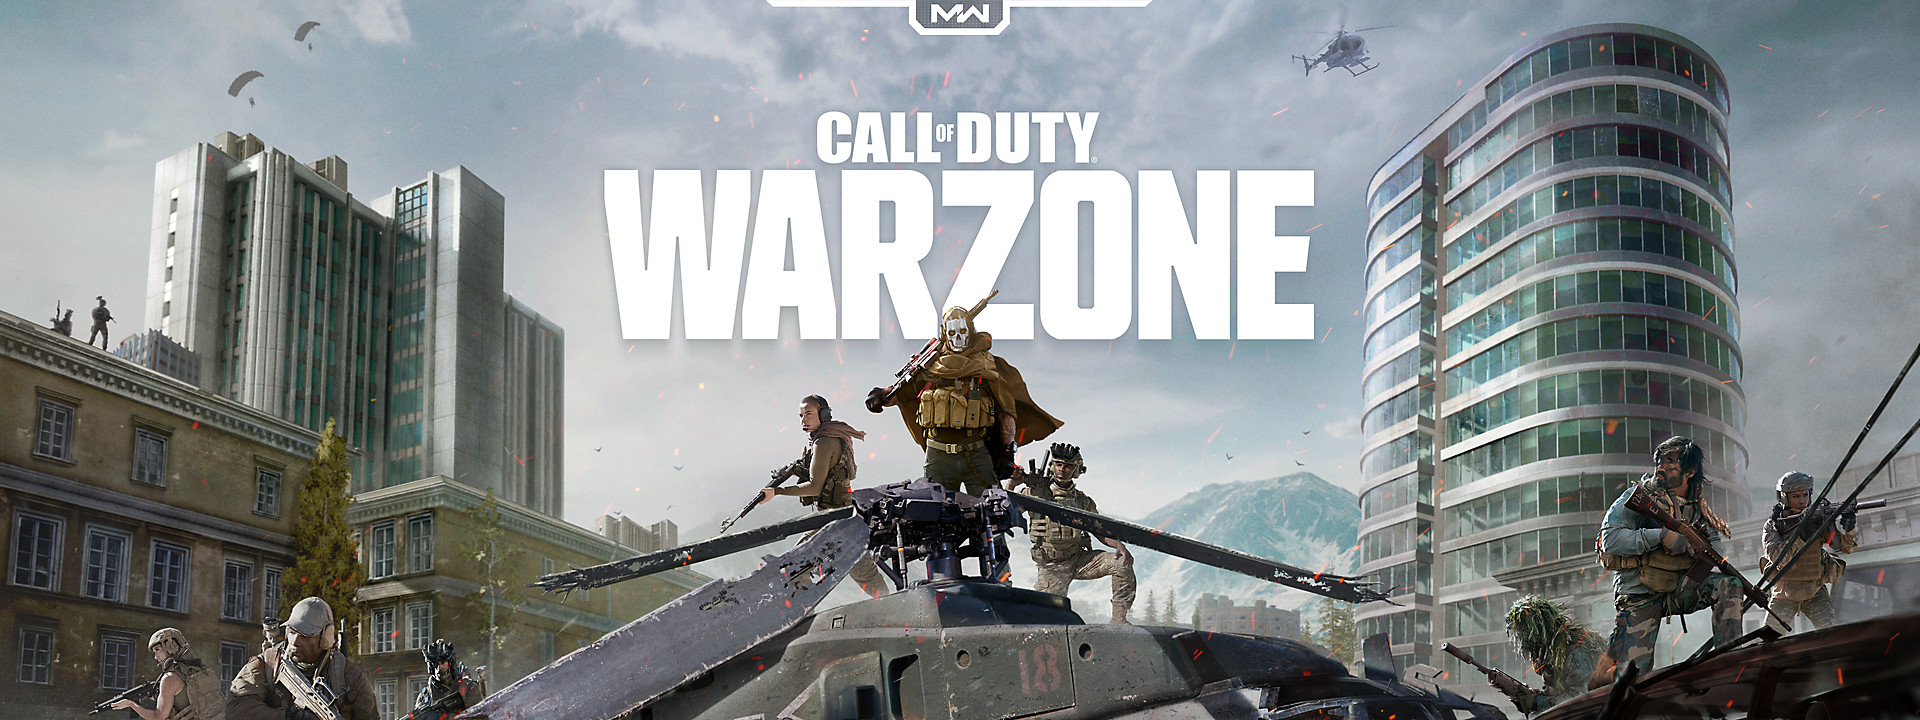 Call of Duty: Warzone - Play Now for Free